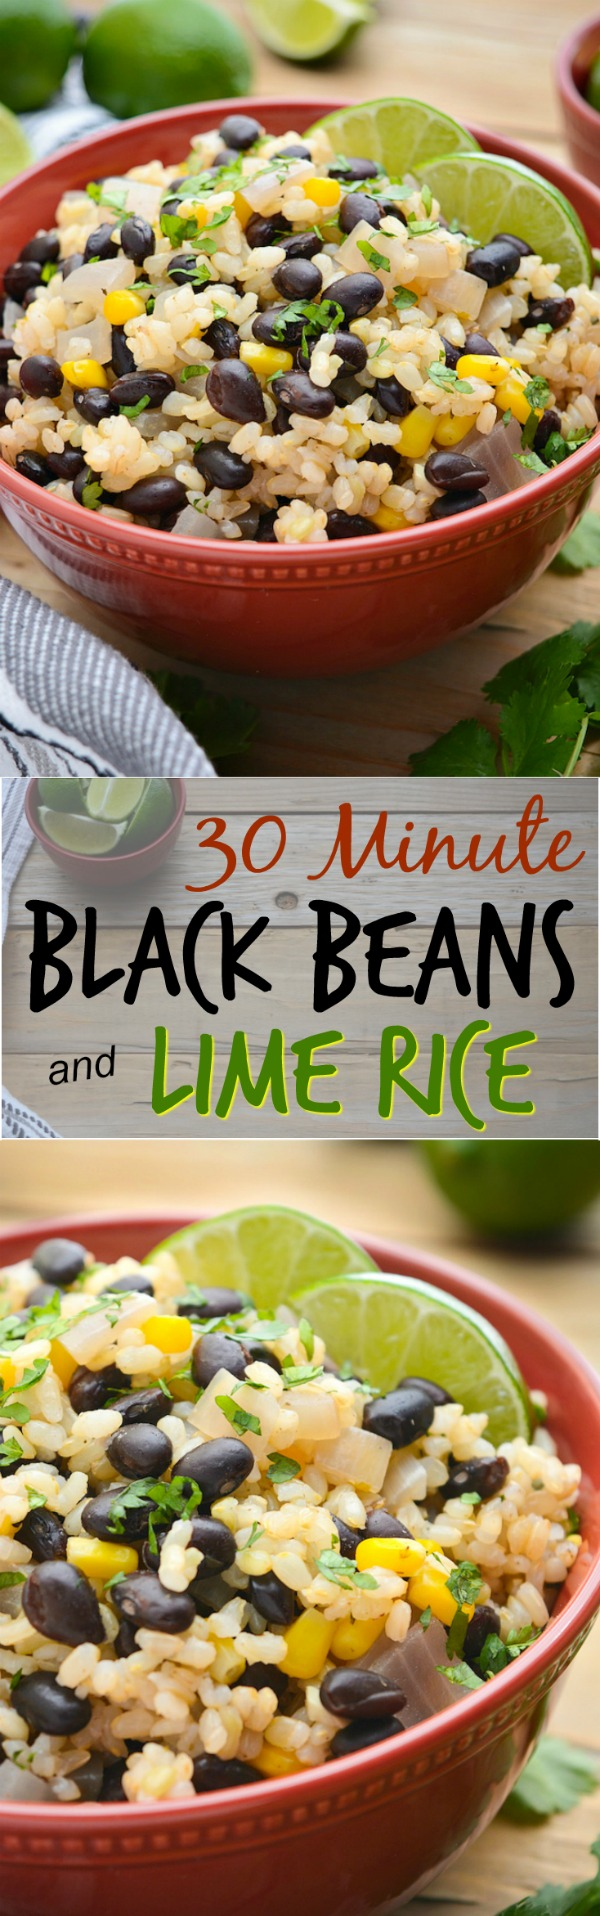 A collage of black beans and lime rice for pinterest.